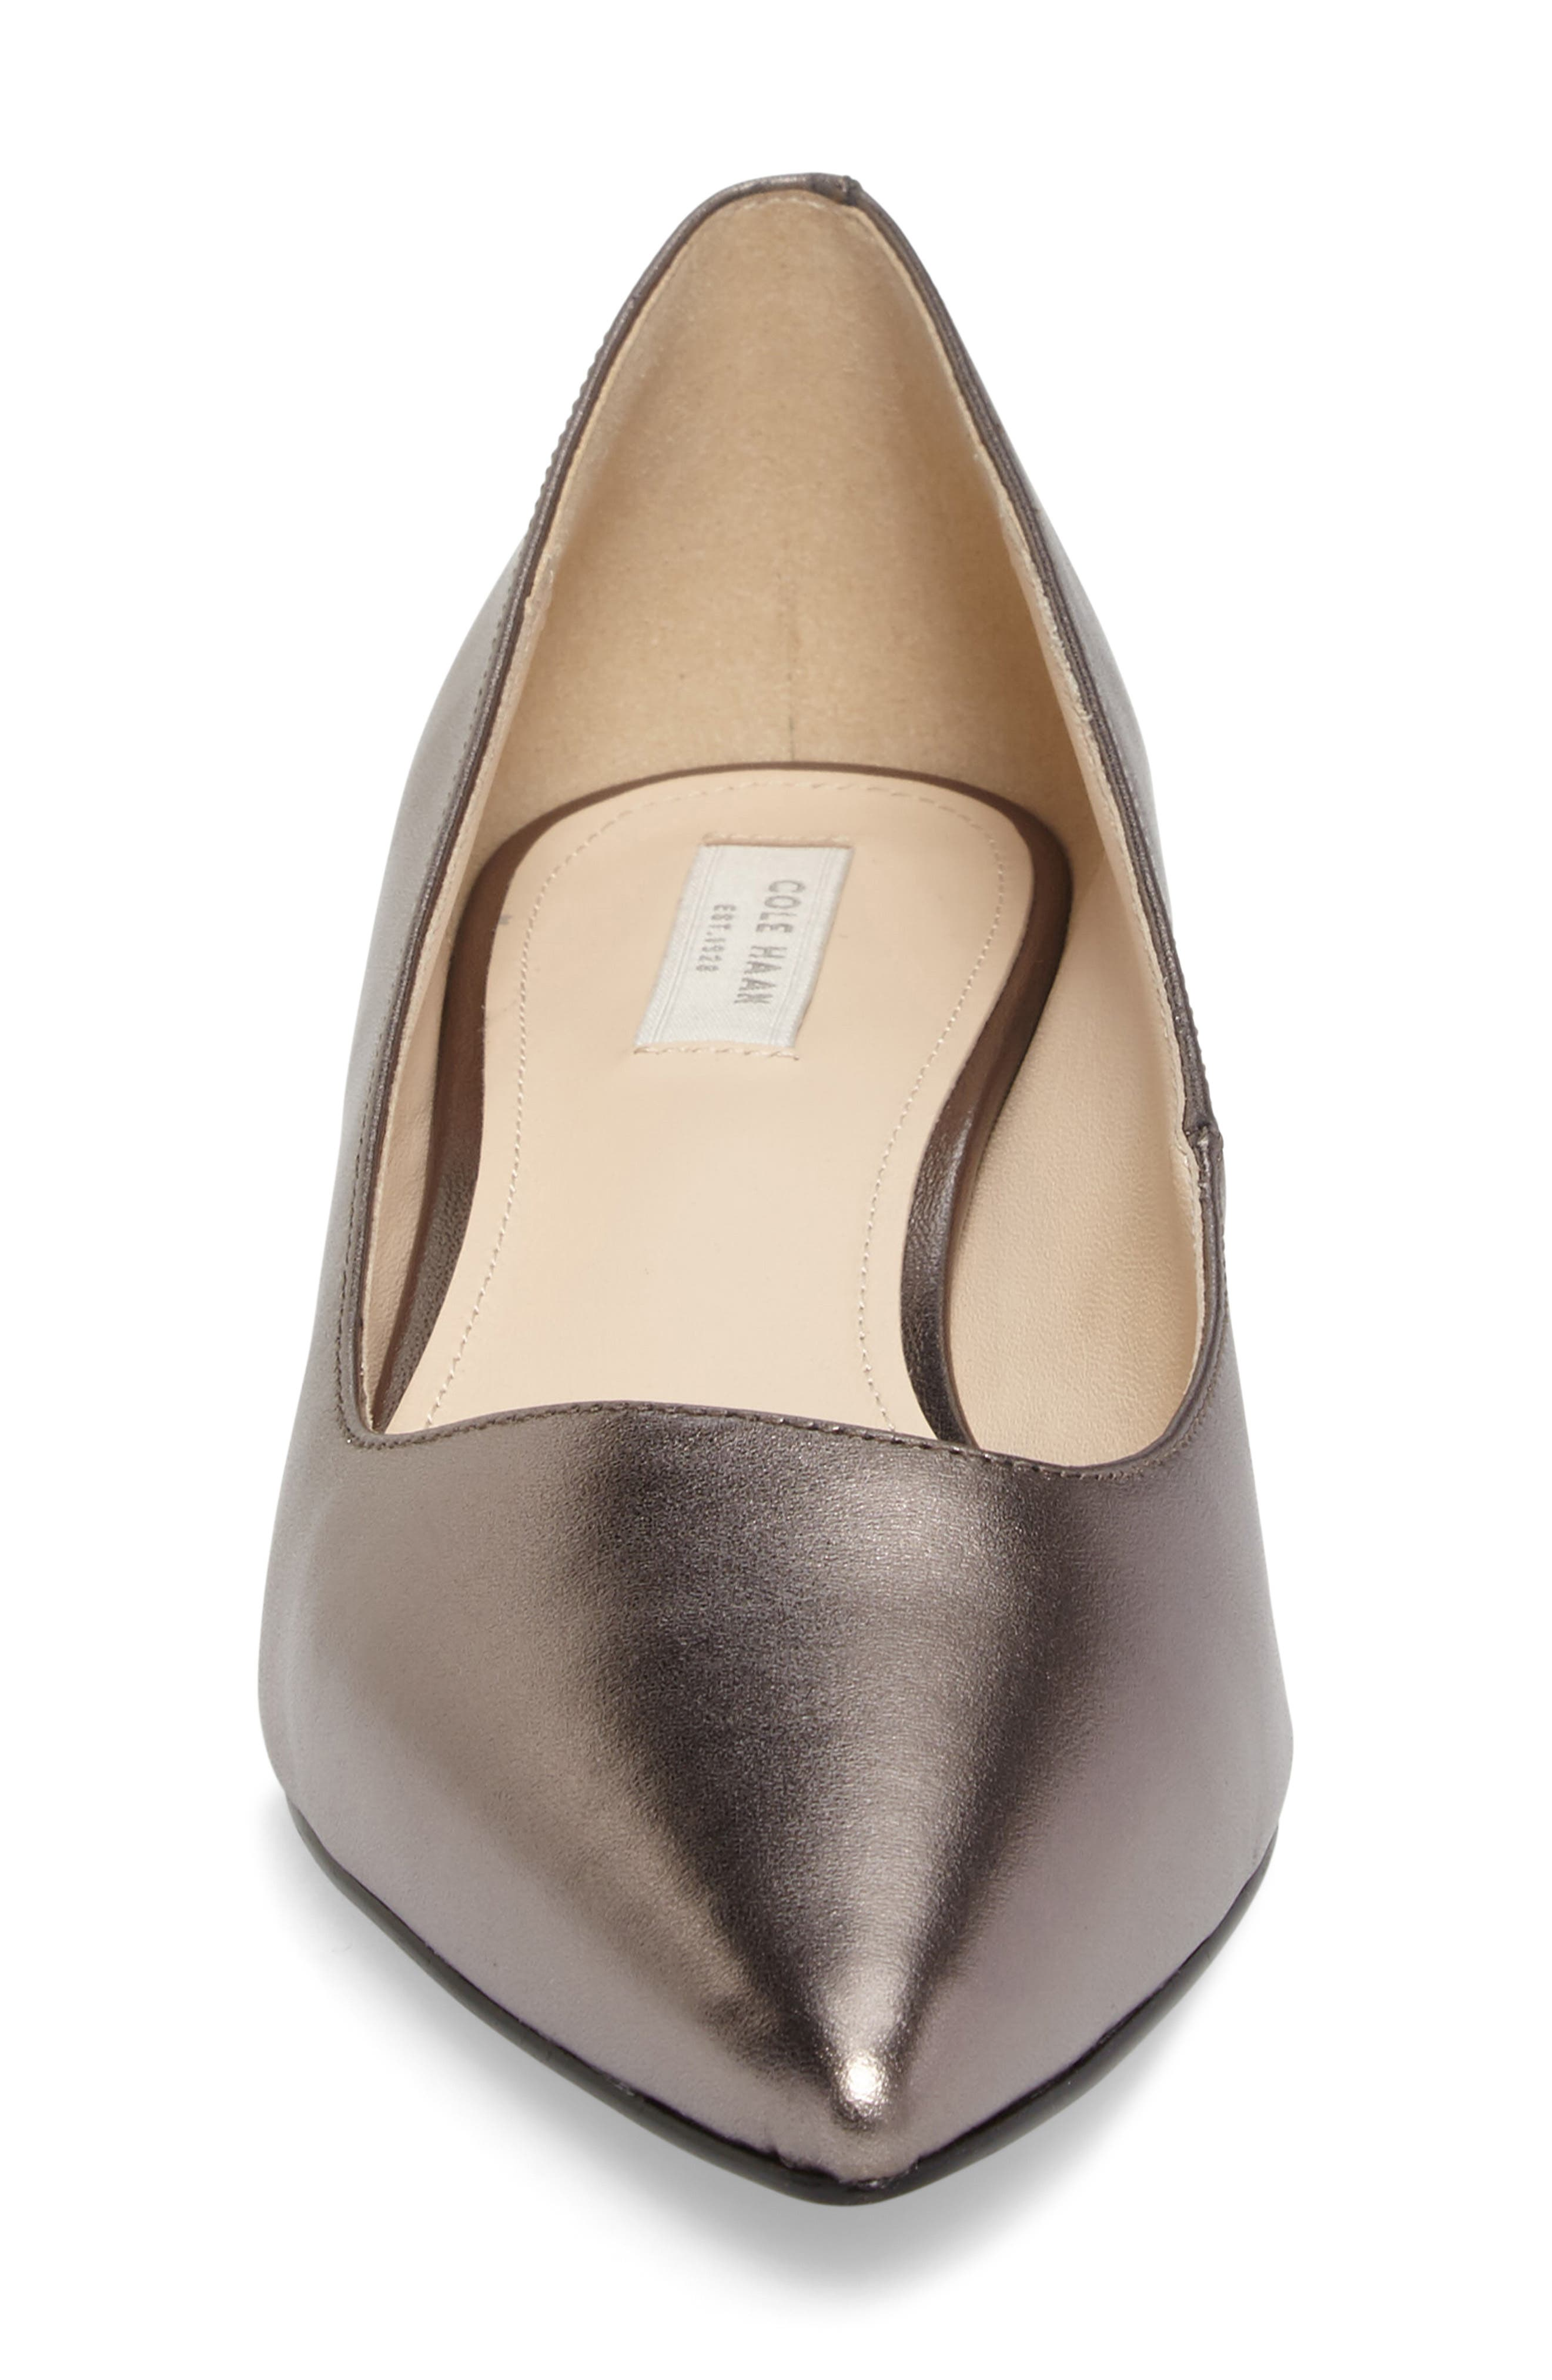 Heidy Pointy Toe Flat,                             Alternate thumbnail 4, color,                             Pewter Metallic Leather